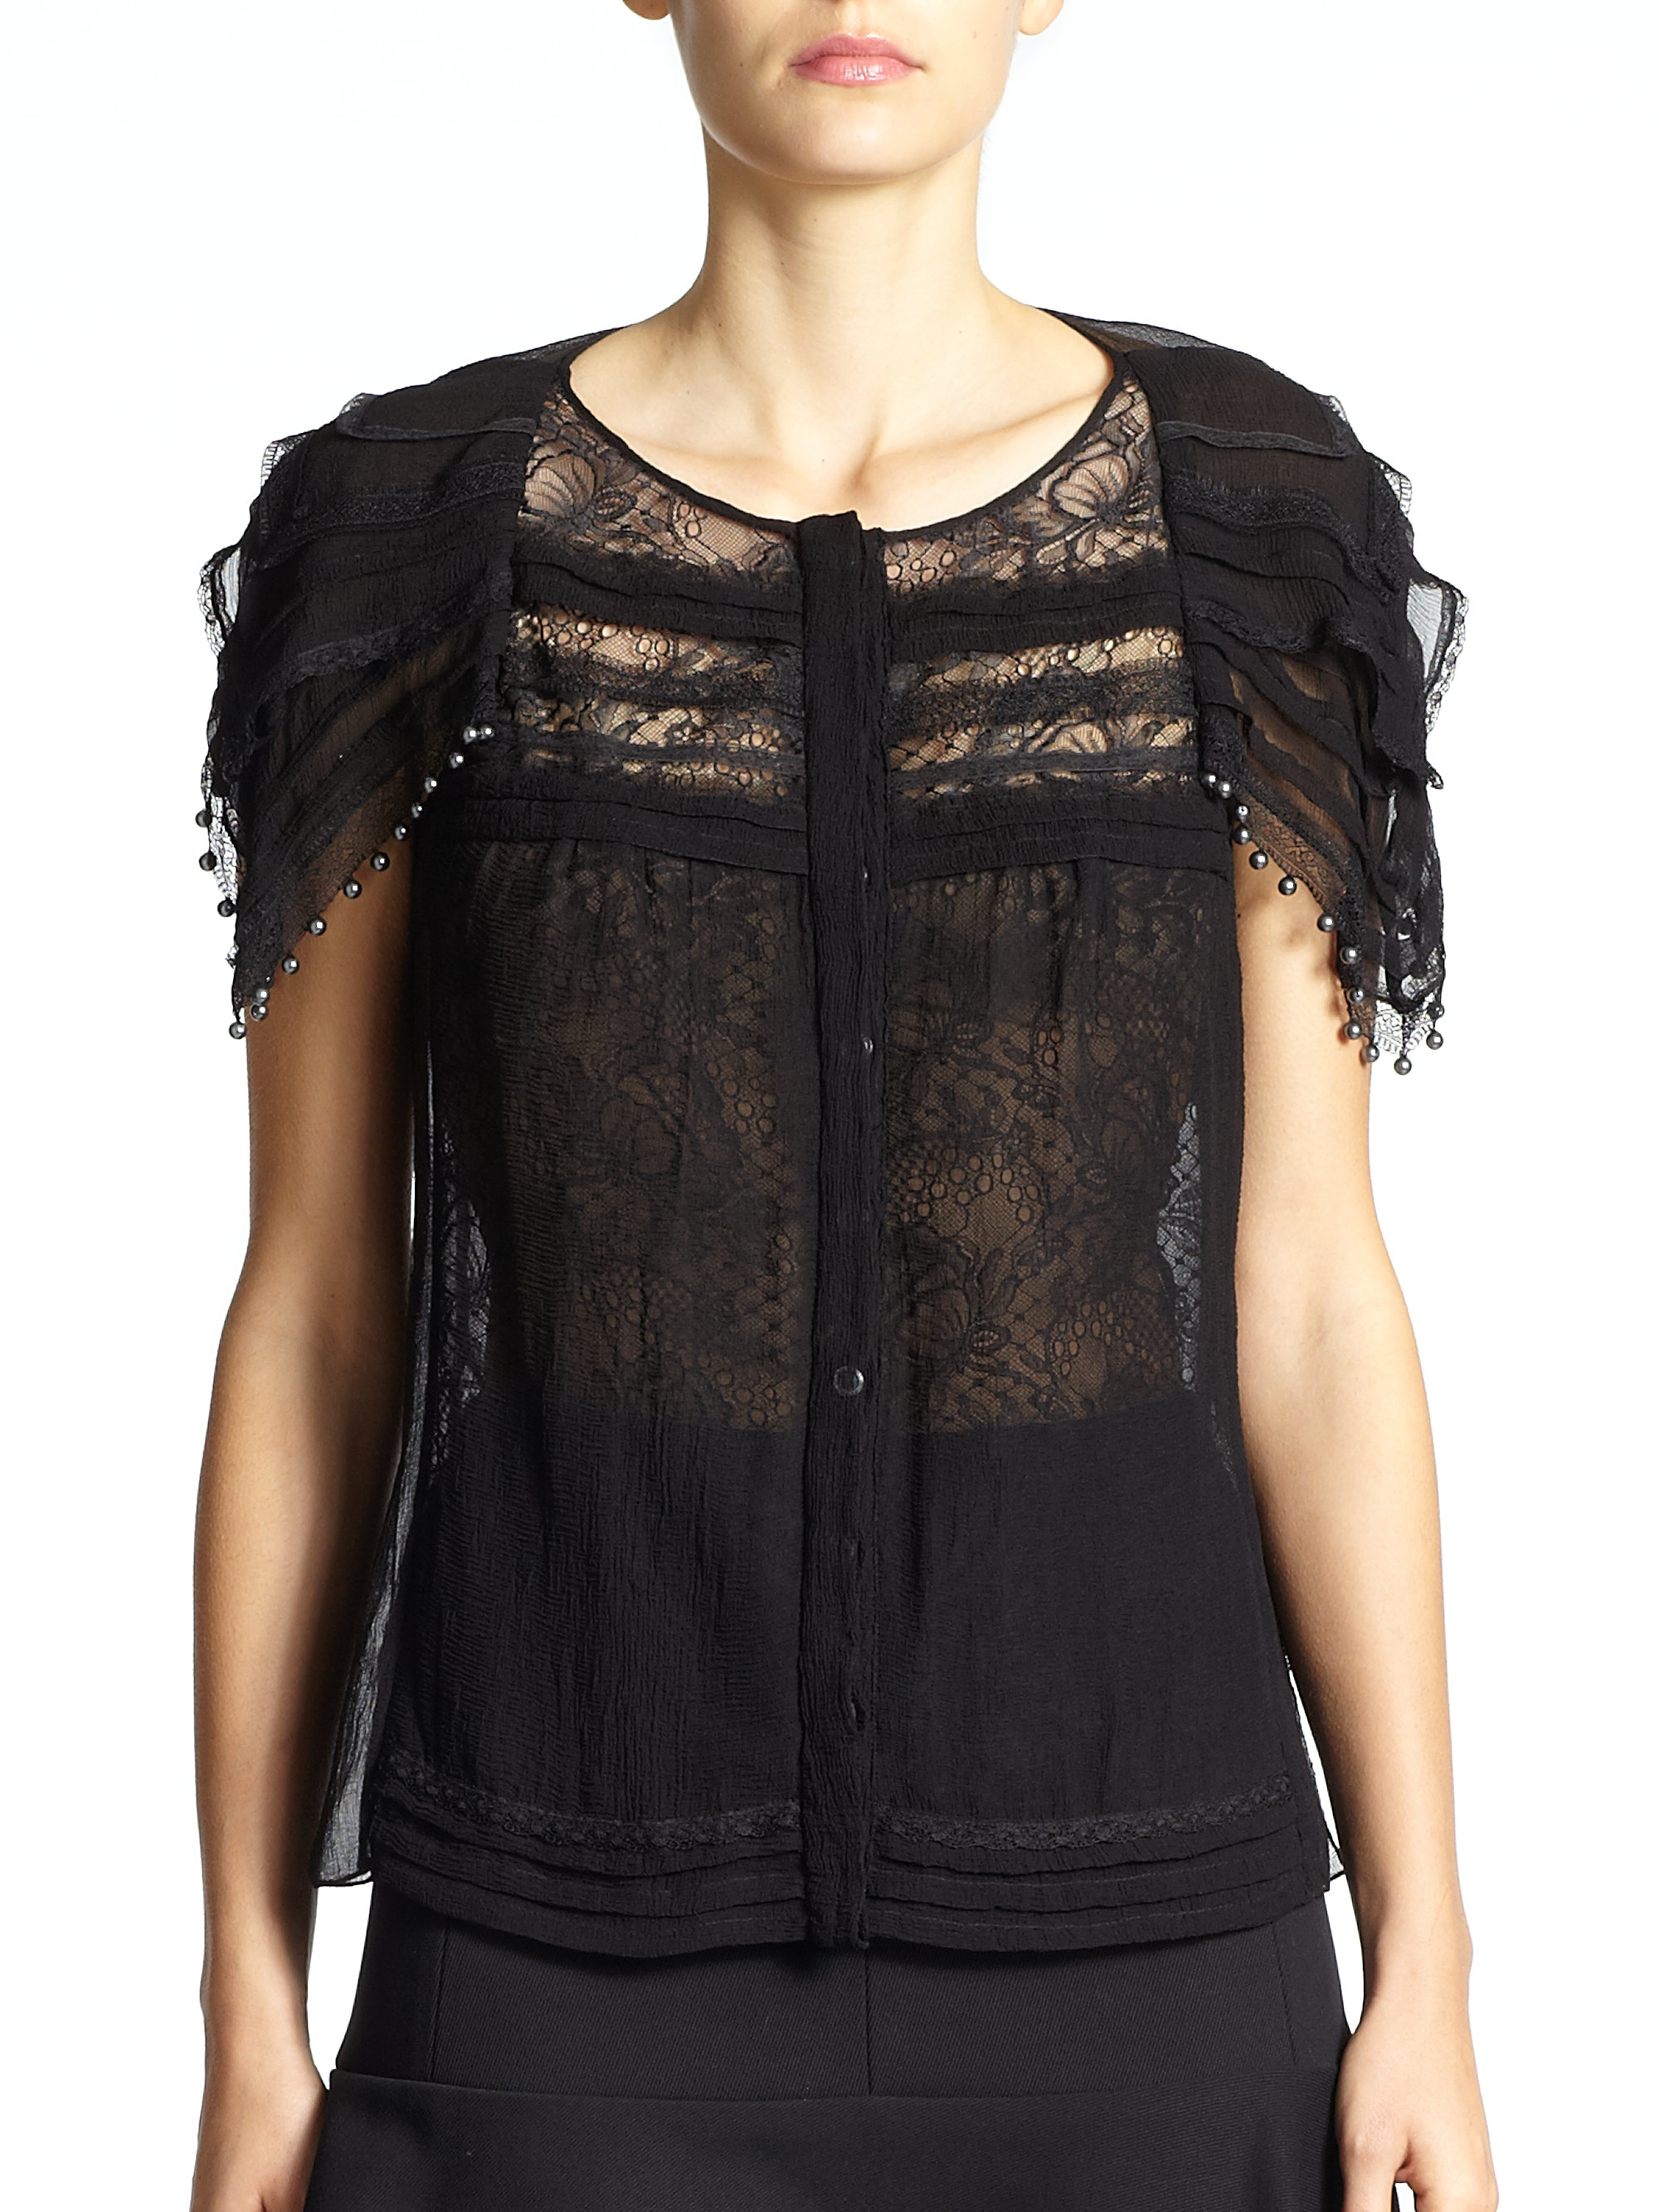 Exclusive With Mastercard Cheap Online Lace top Nina Ricci dTDIkjPA4